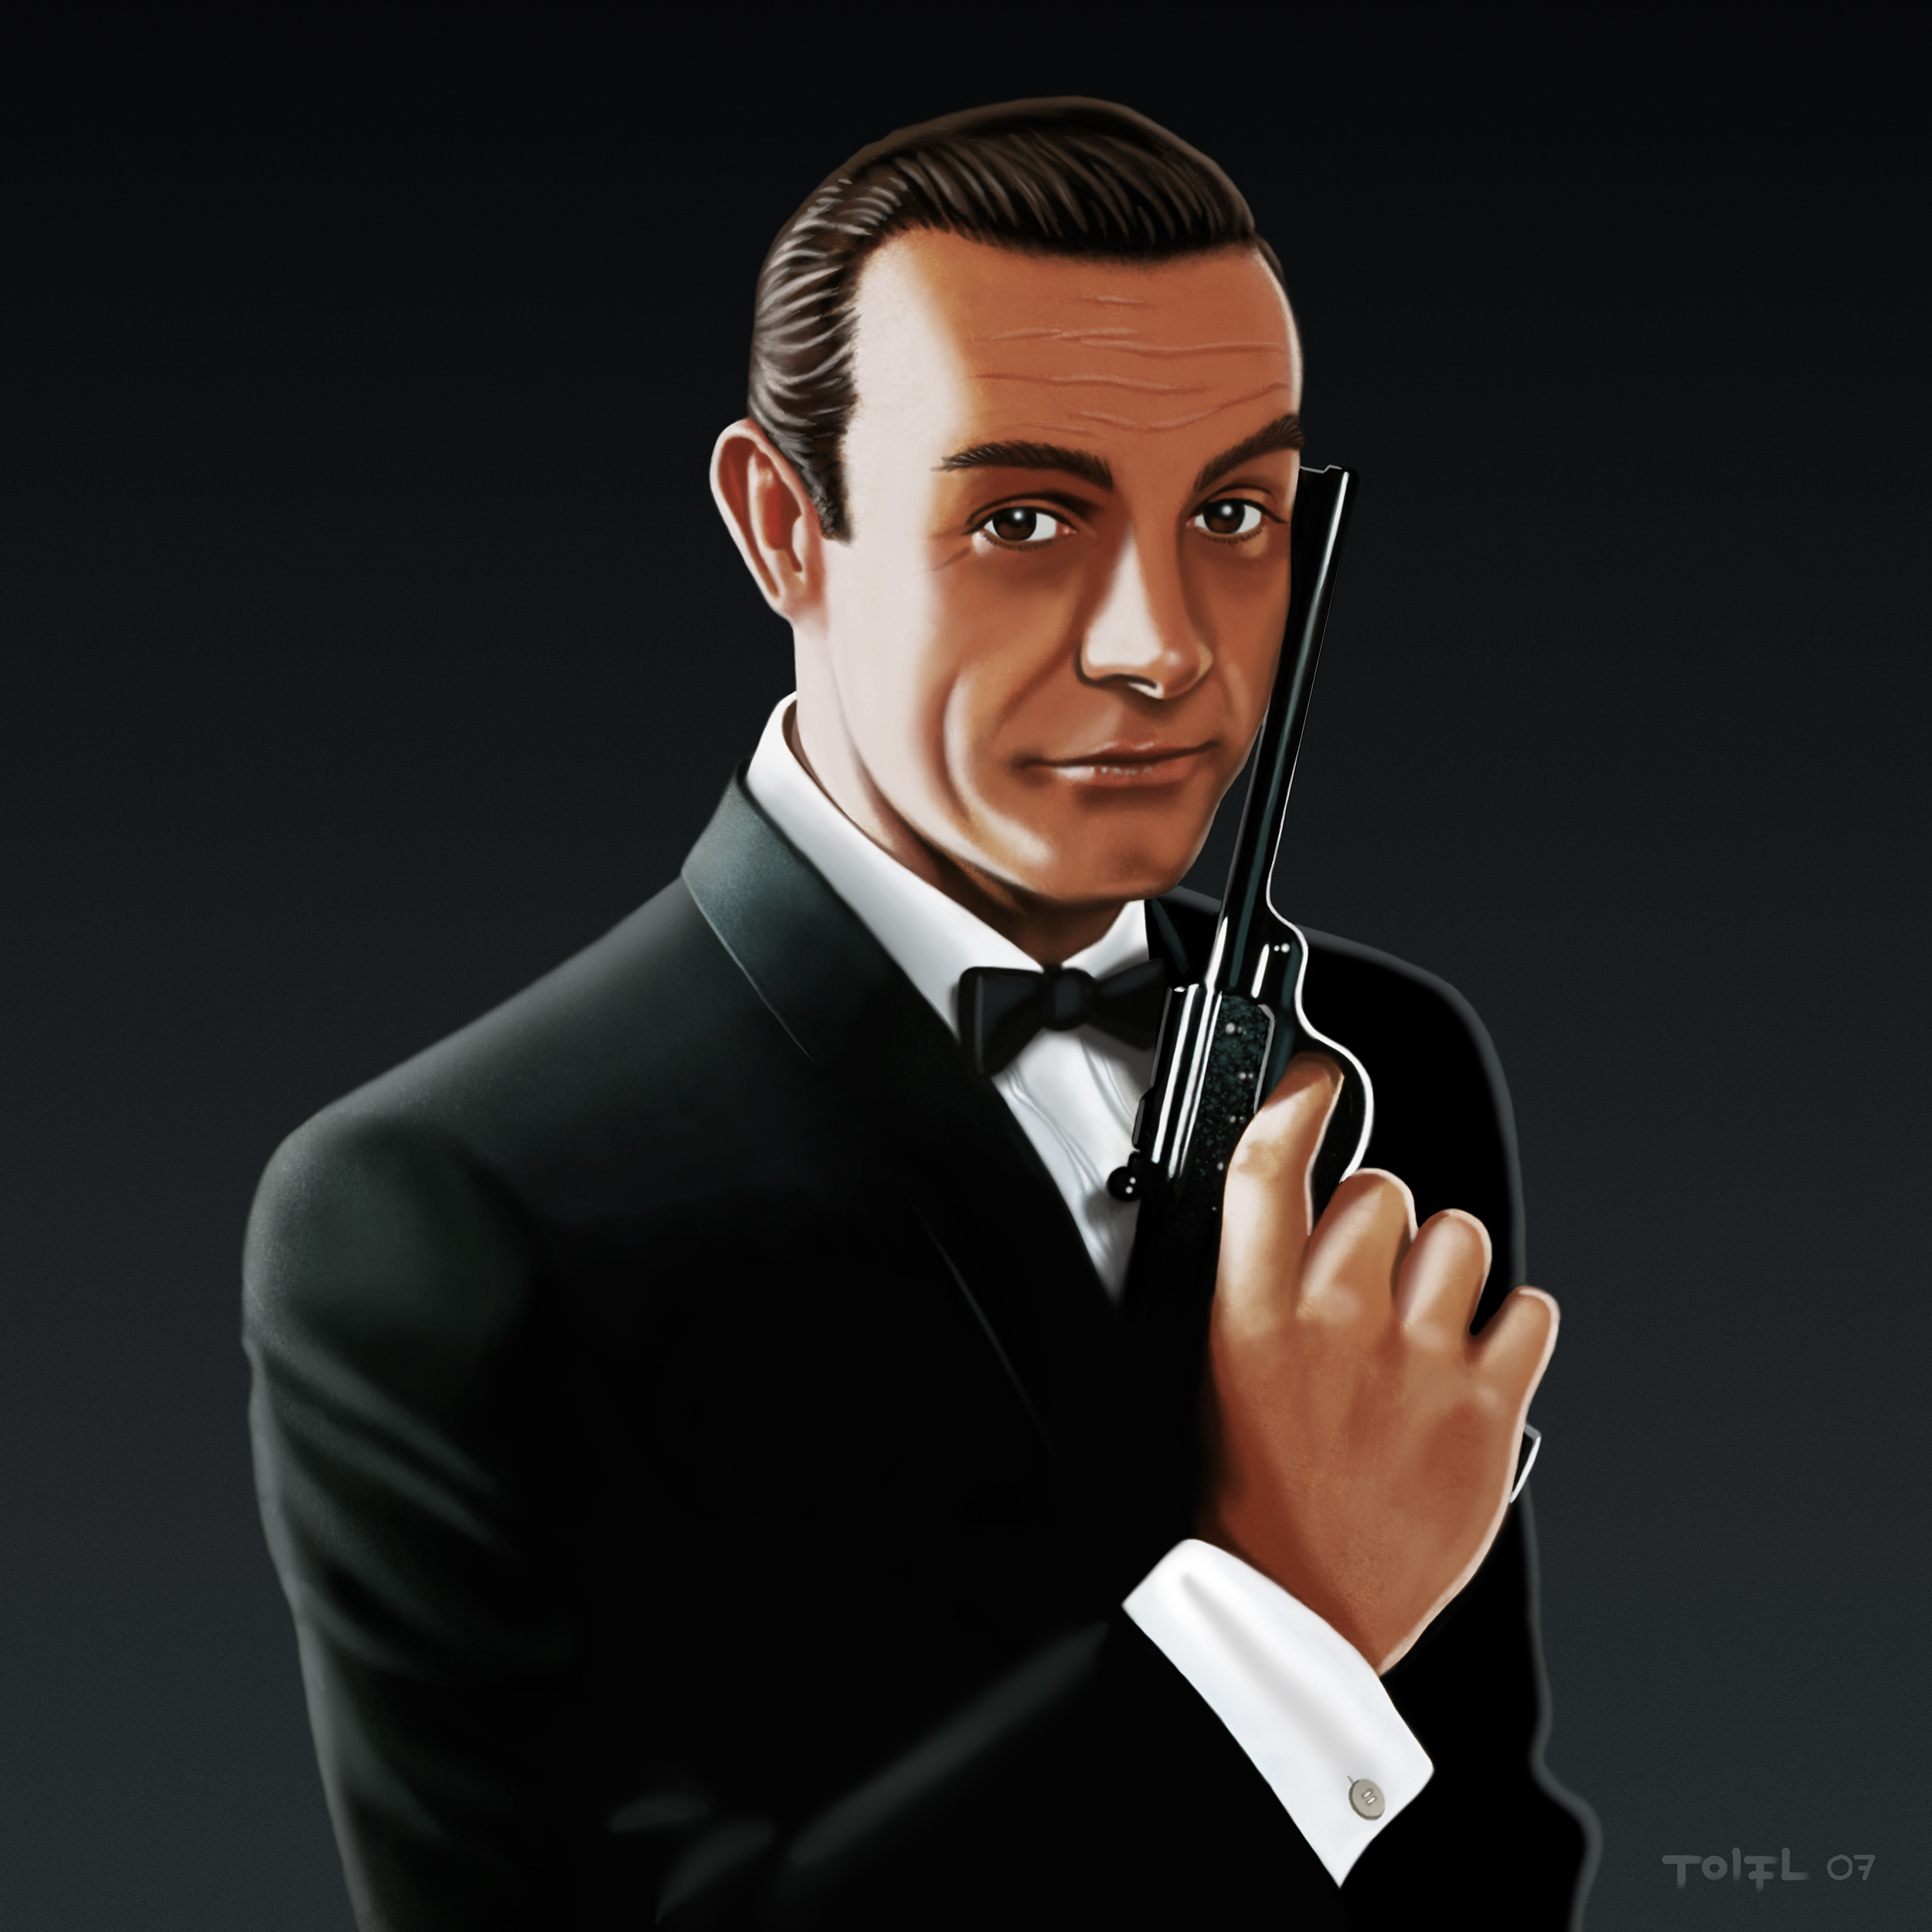 Bond, James Bond by patricktoifl